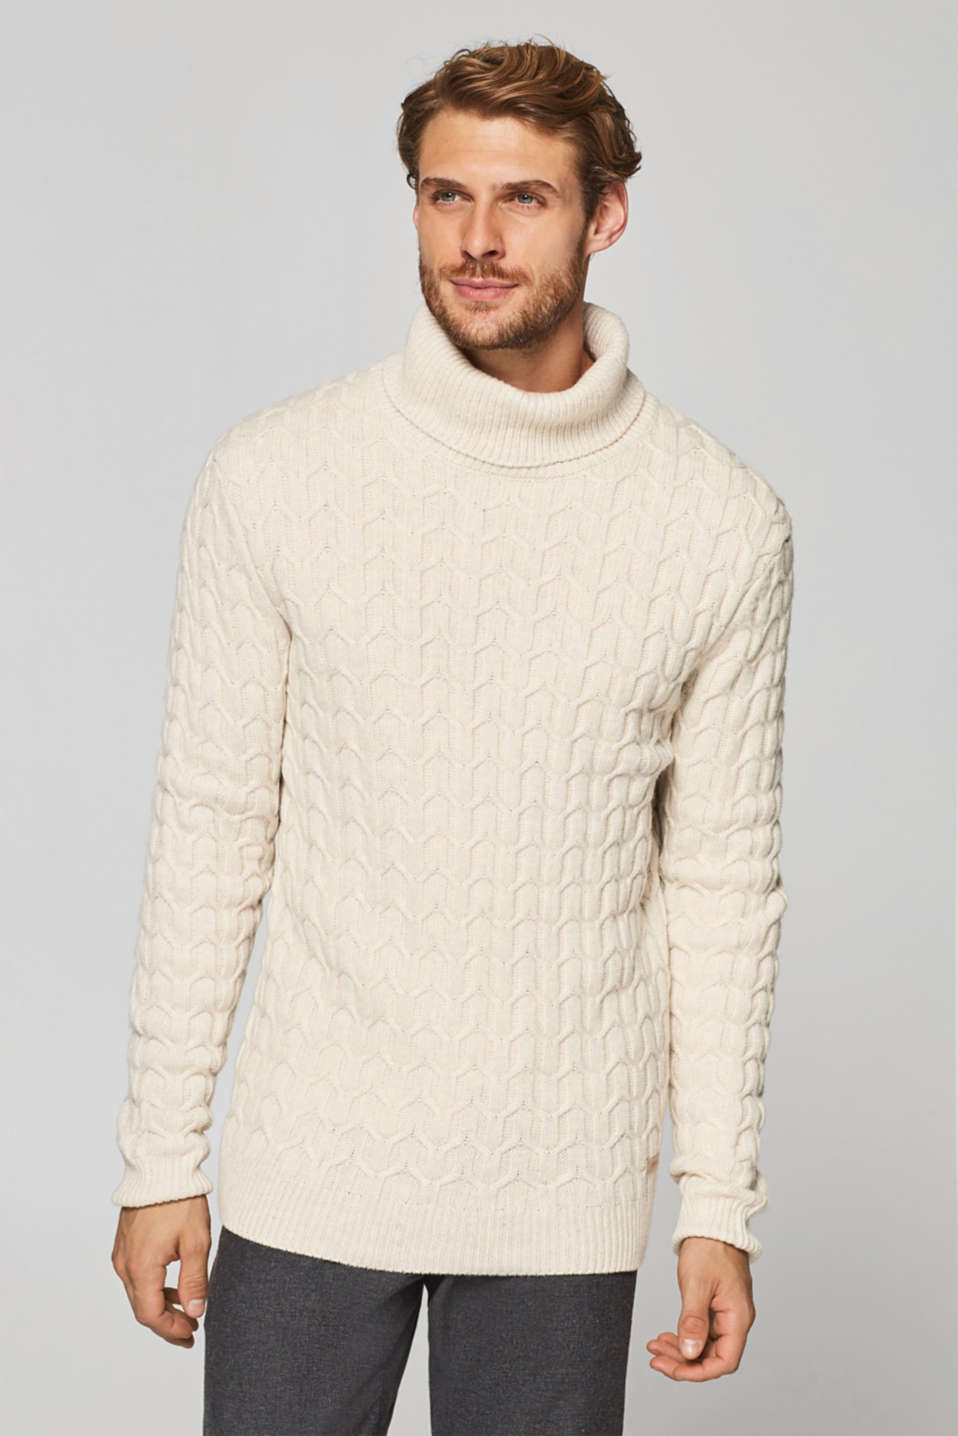 Esprit - With wool: jumper with a cable pattern